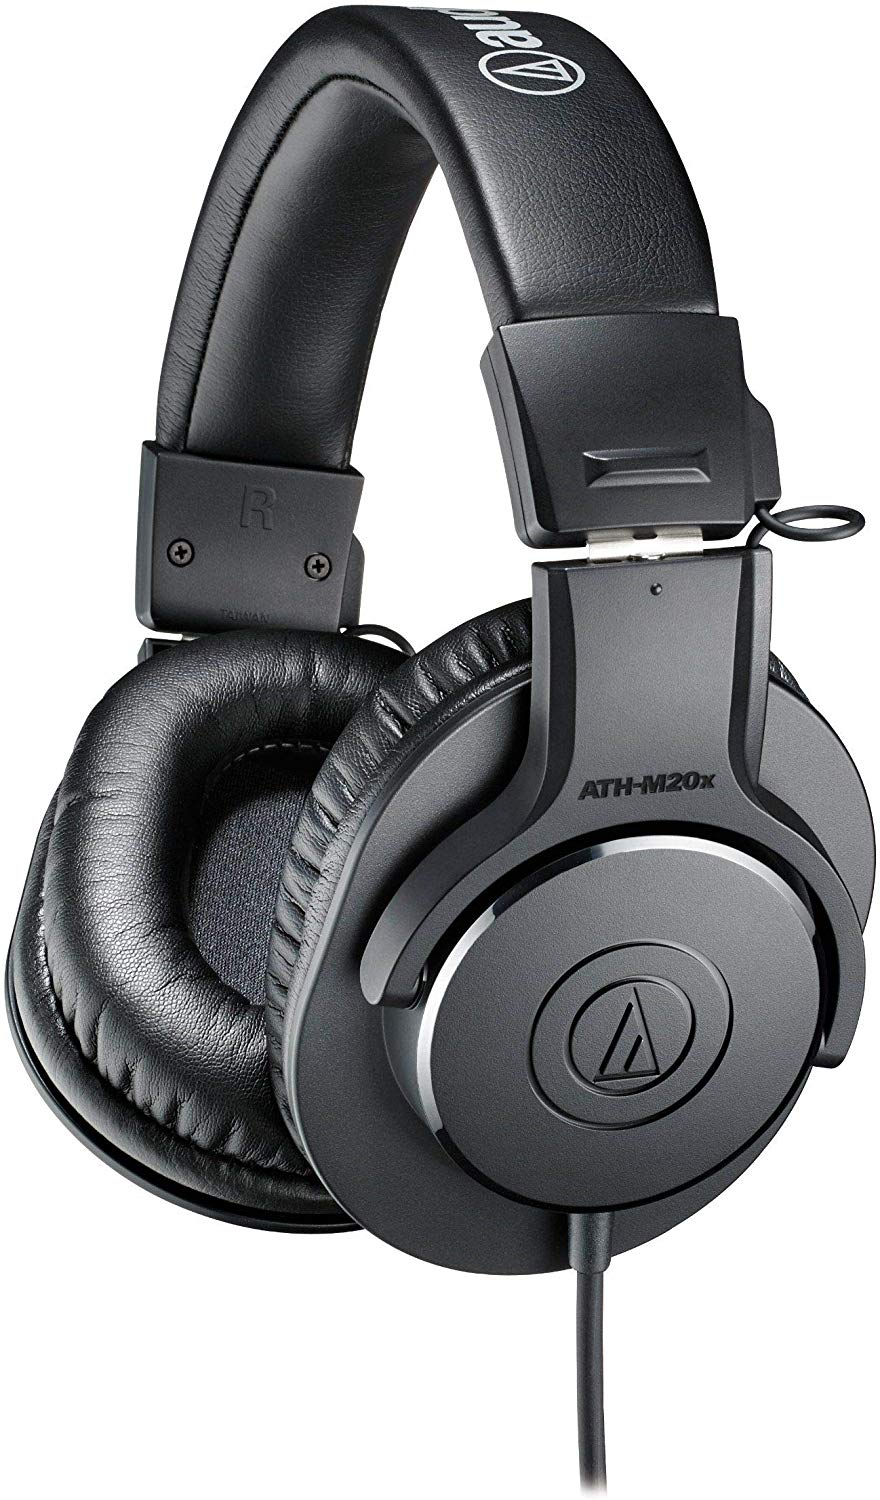 ATH-M20x from Audio Technica